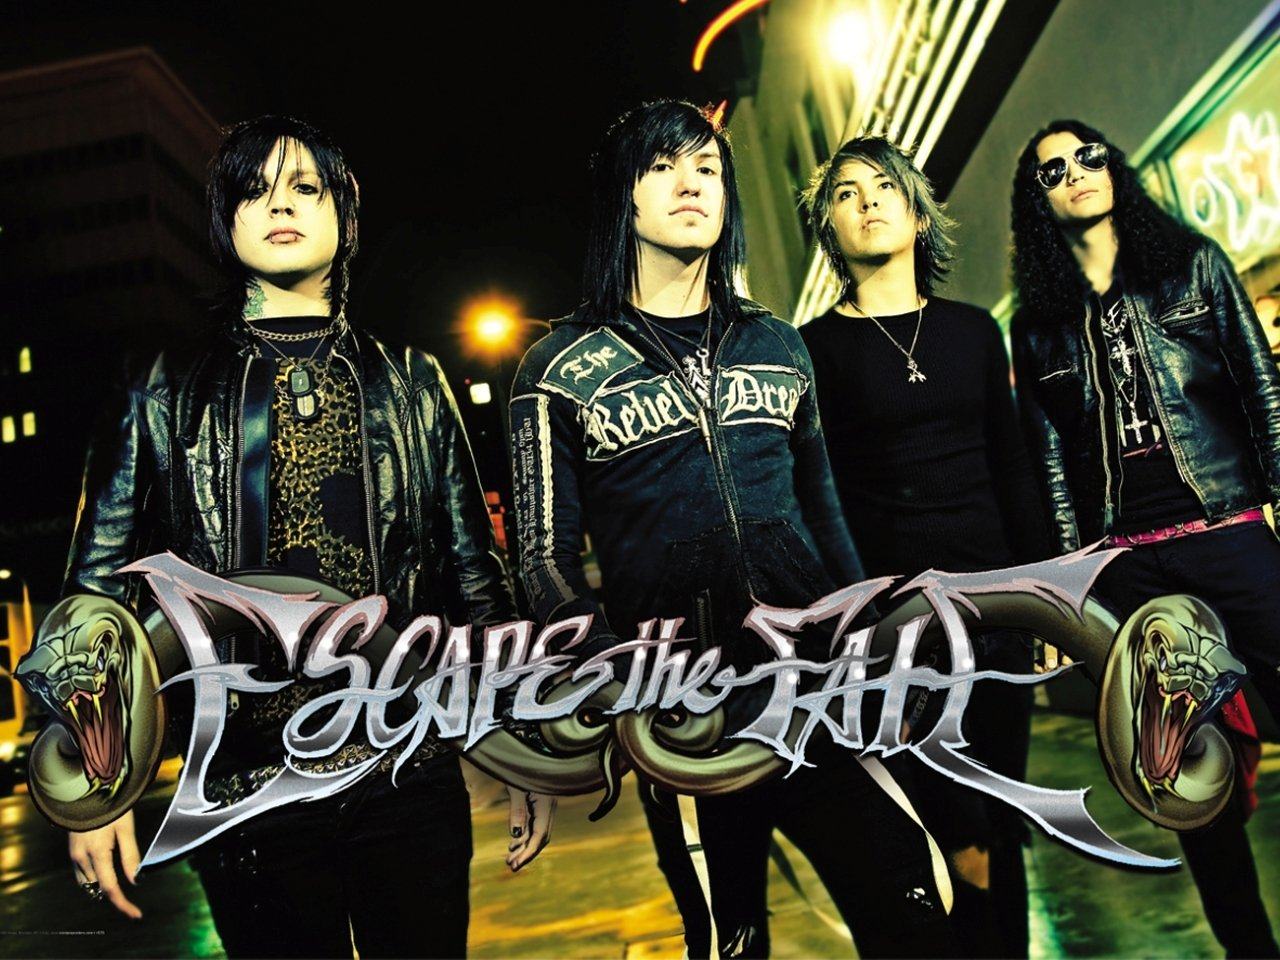 Escape-The-Fate-005.jpg